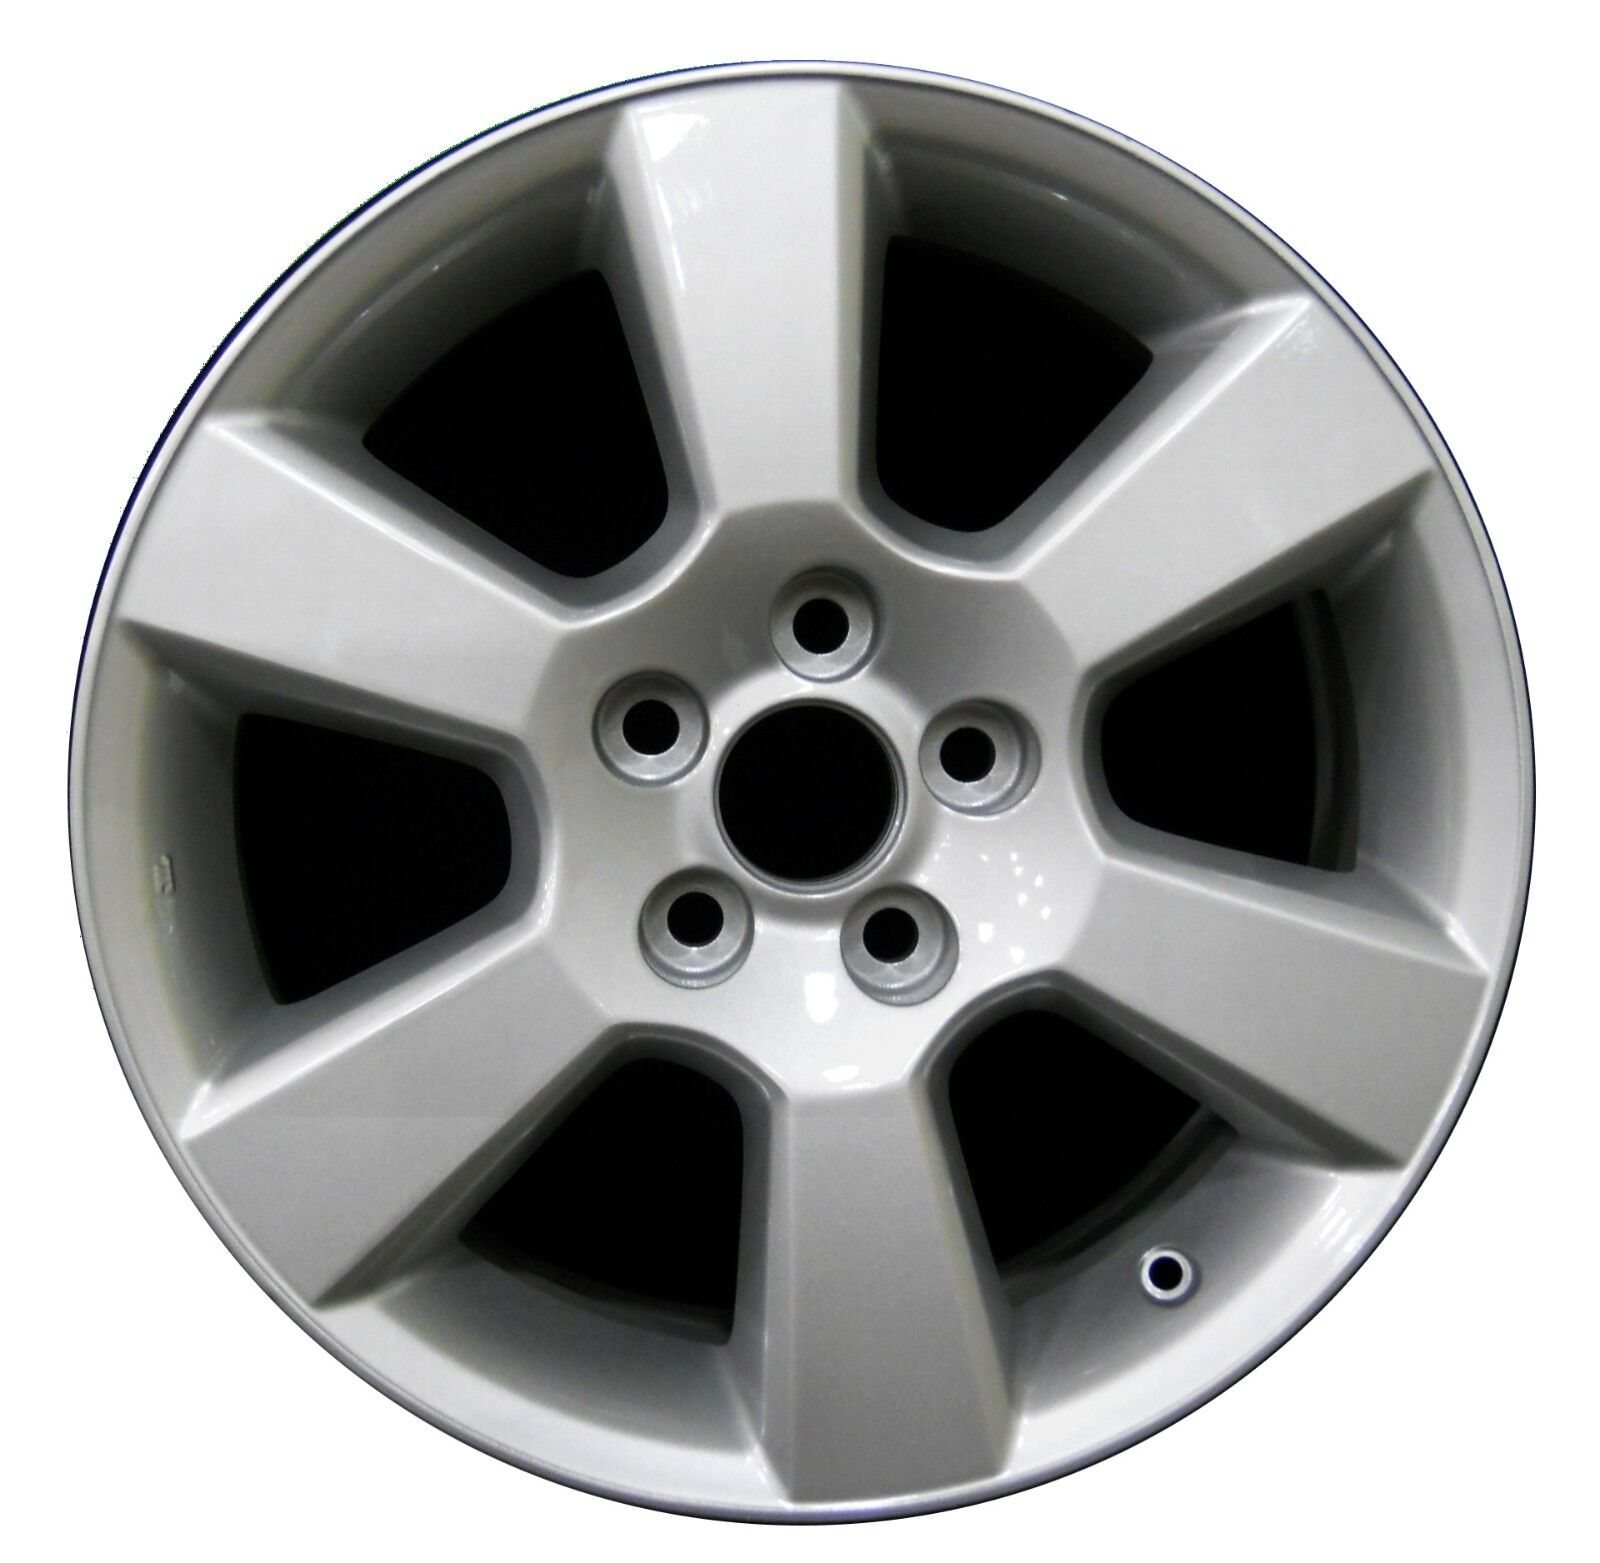 Used 2005 Lexus Rx330 Wheels And Hubcaps For Sale Black 17 Rx350 Rx400h 2004 2009 Factory Oem Rim Wheel 74170